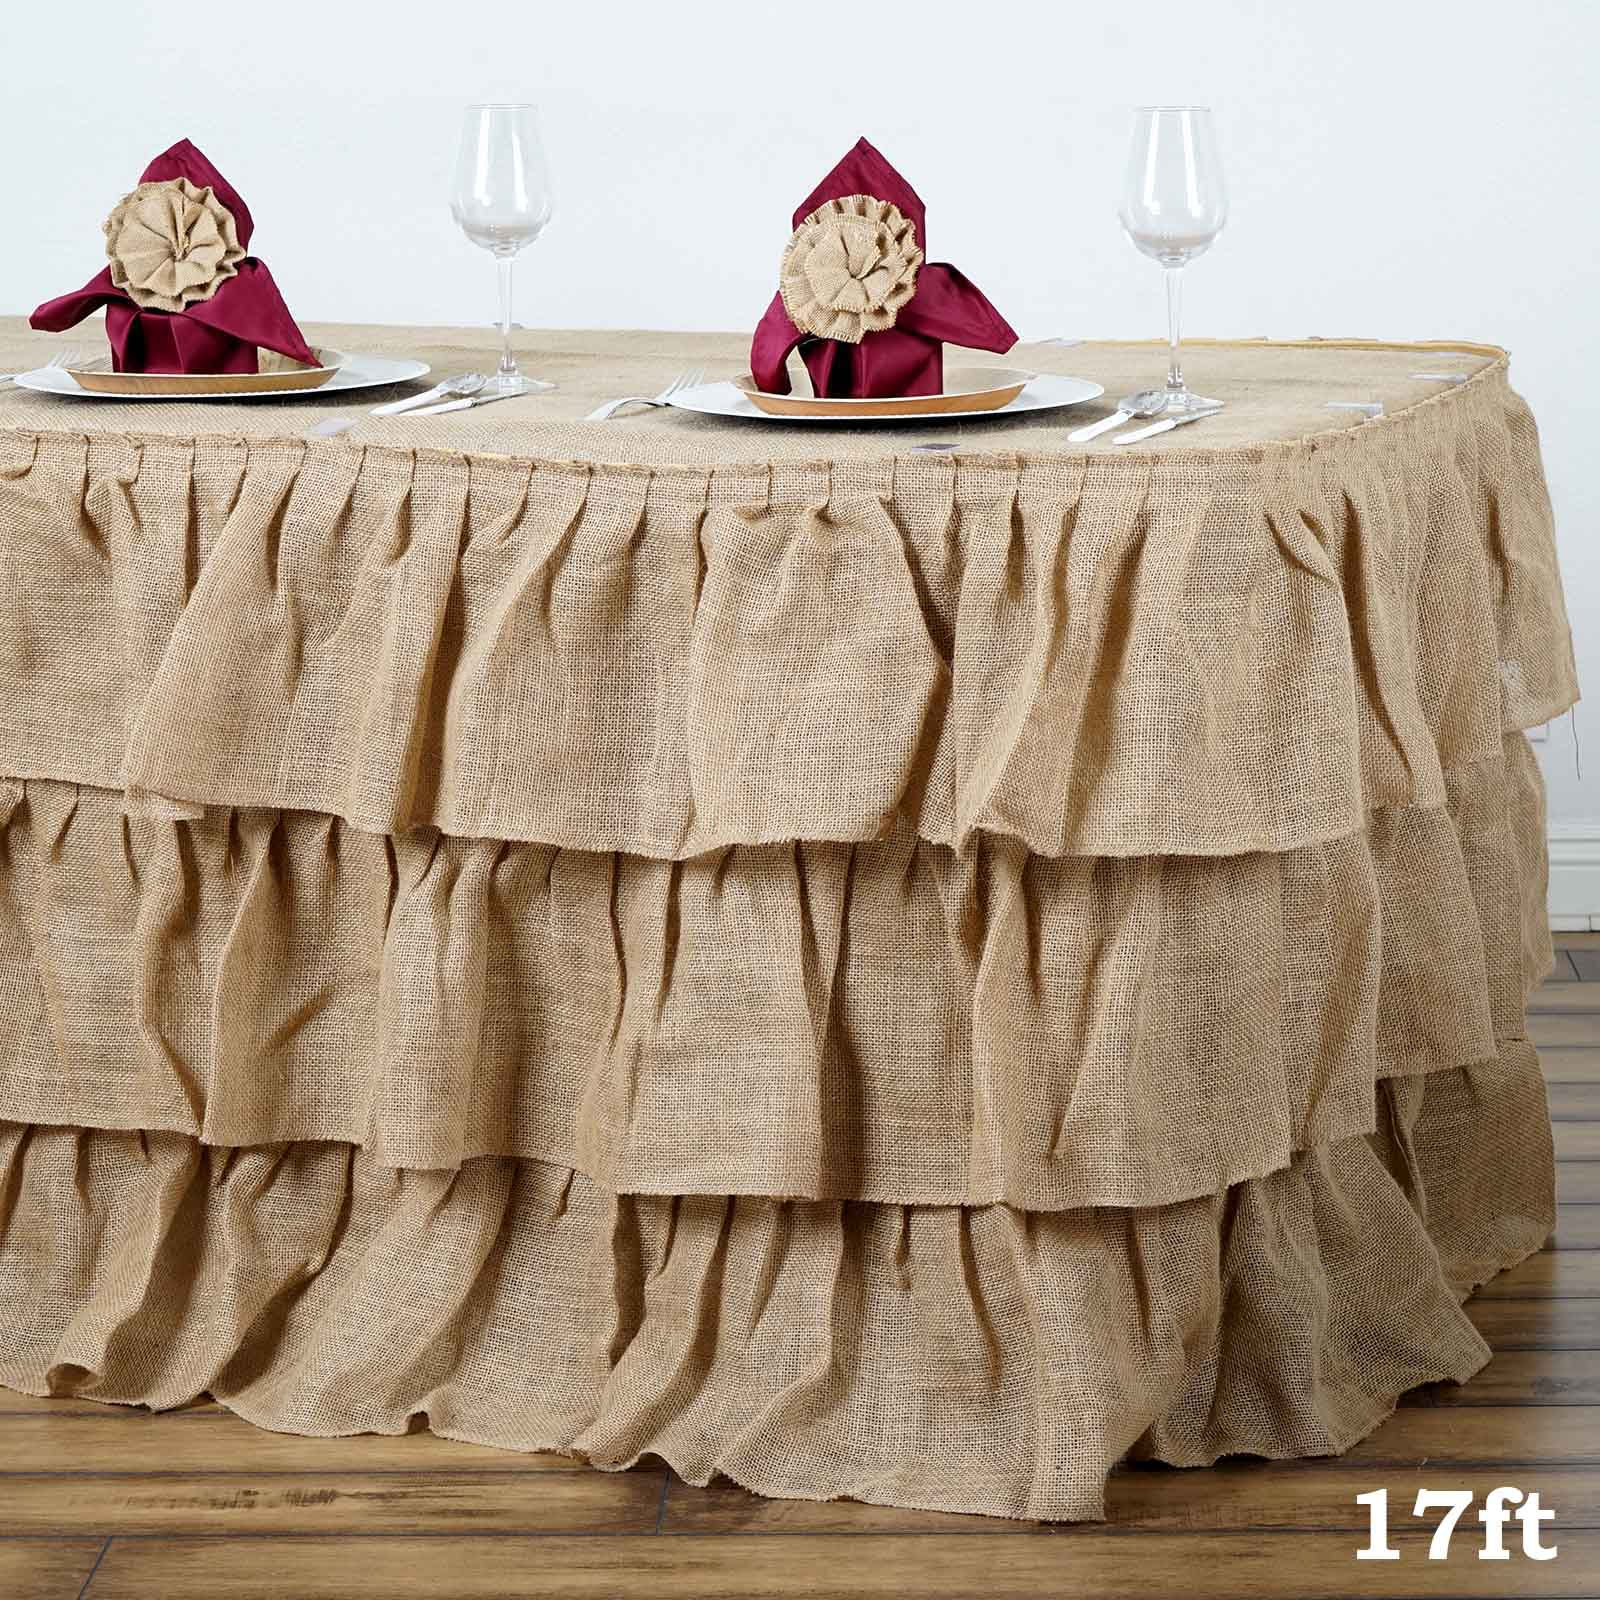 Efavormart 3 Tier Rustic Elegant Ruffled Burlap Table Skirt for Kitchen Dining Catering Wedding Birthday Party Decorations Events